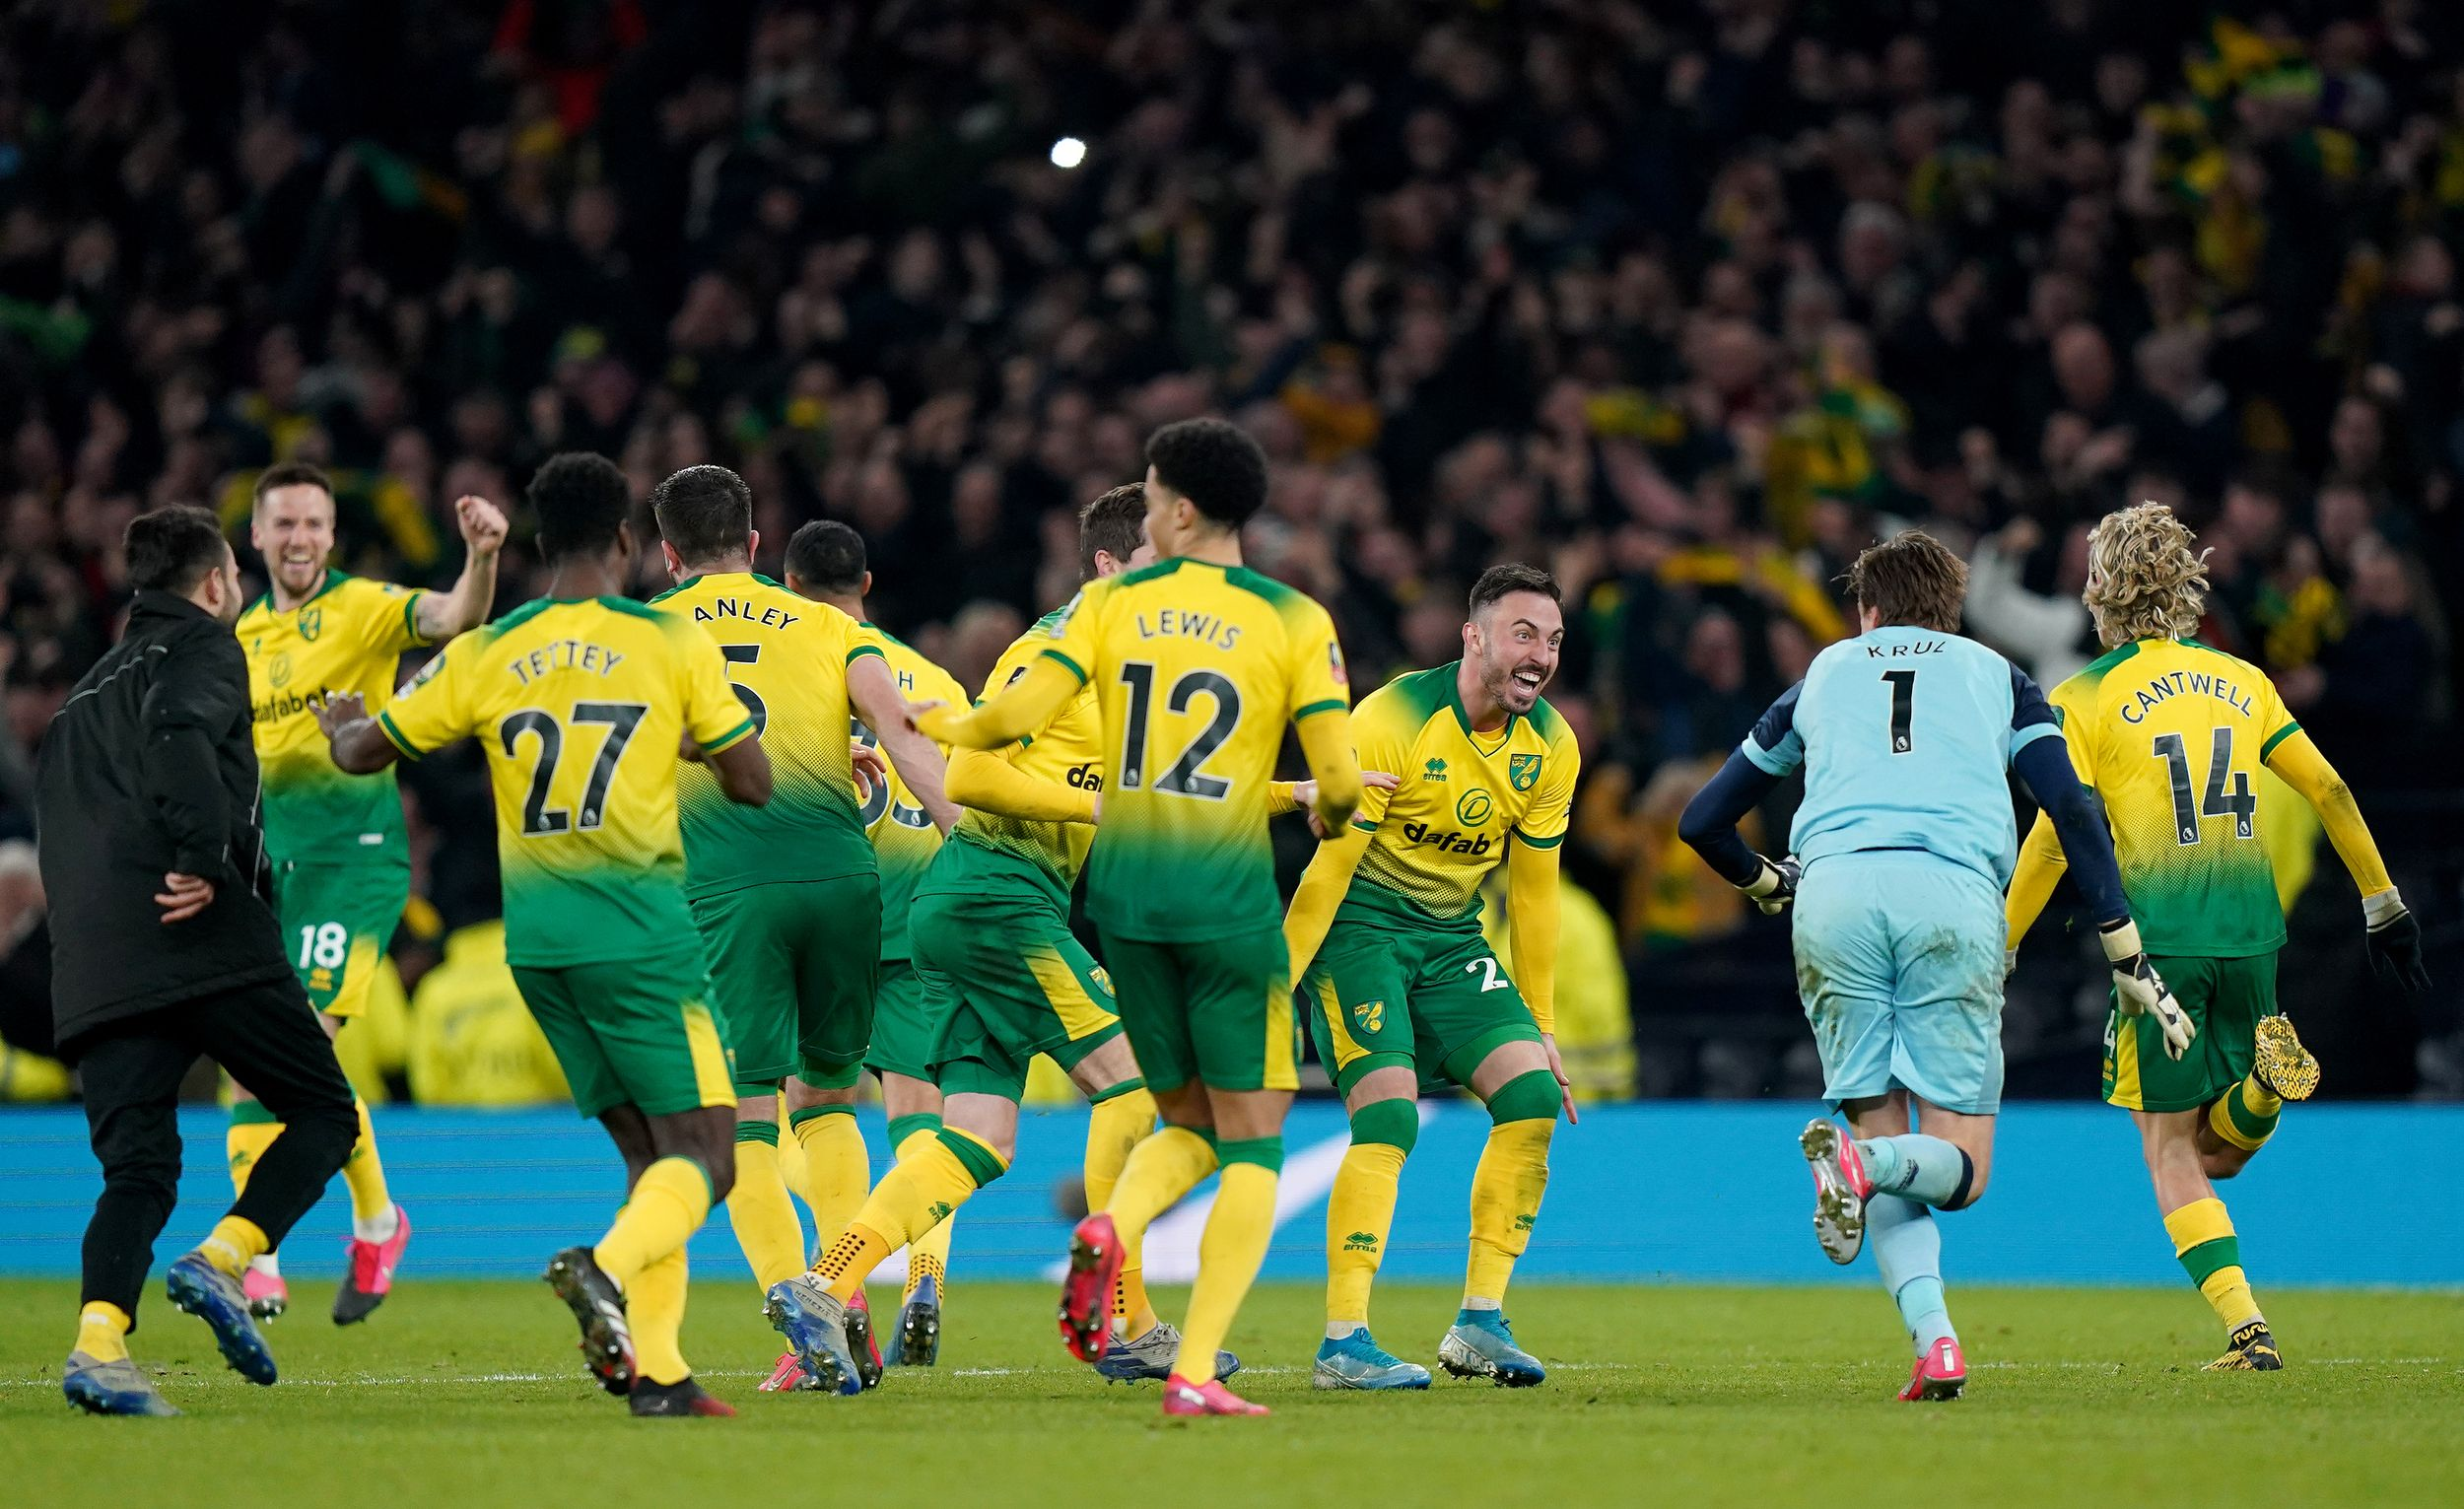 Norwich City players celebrate winning the tie in 2020